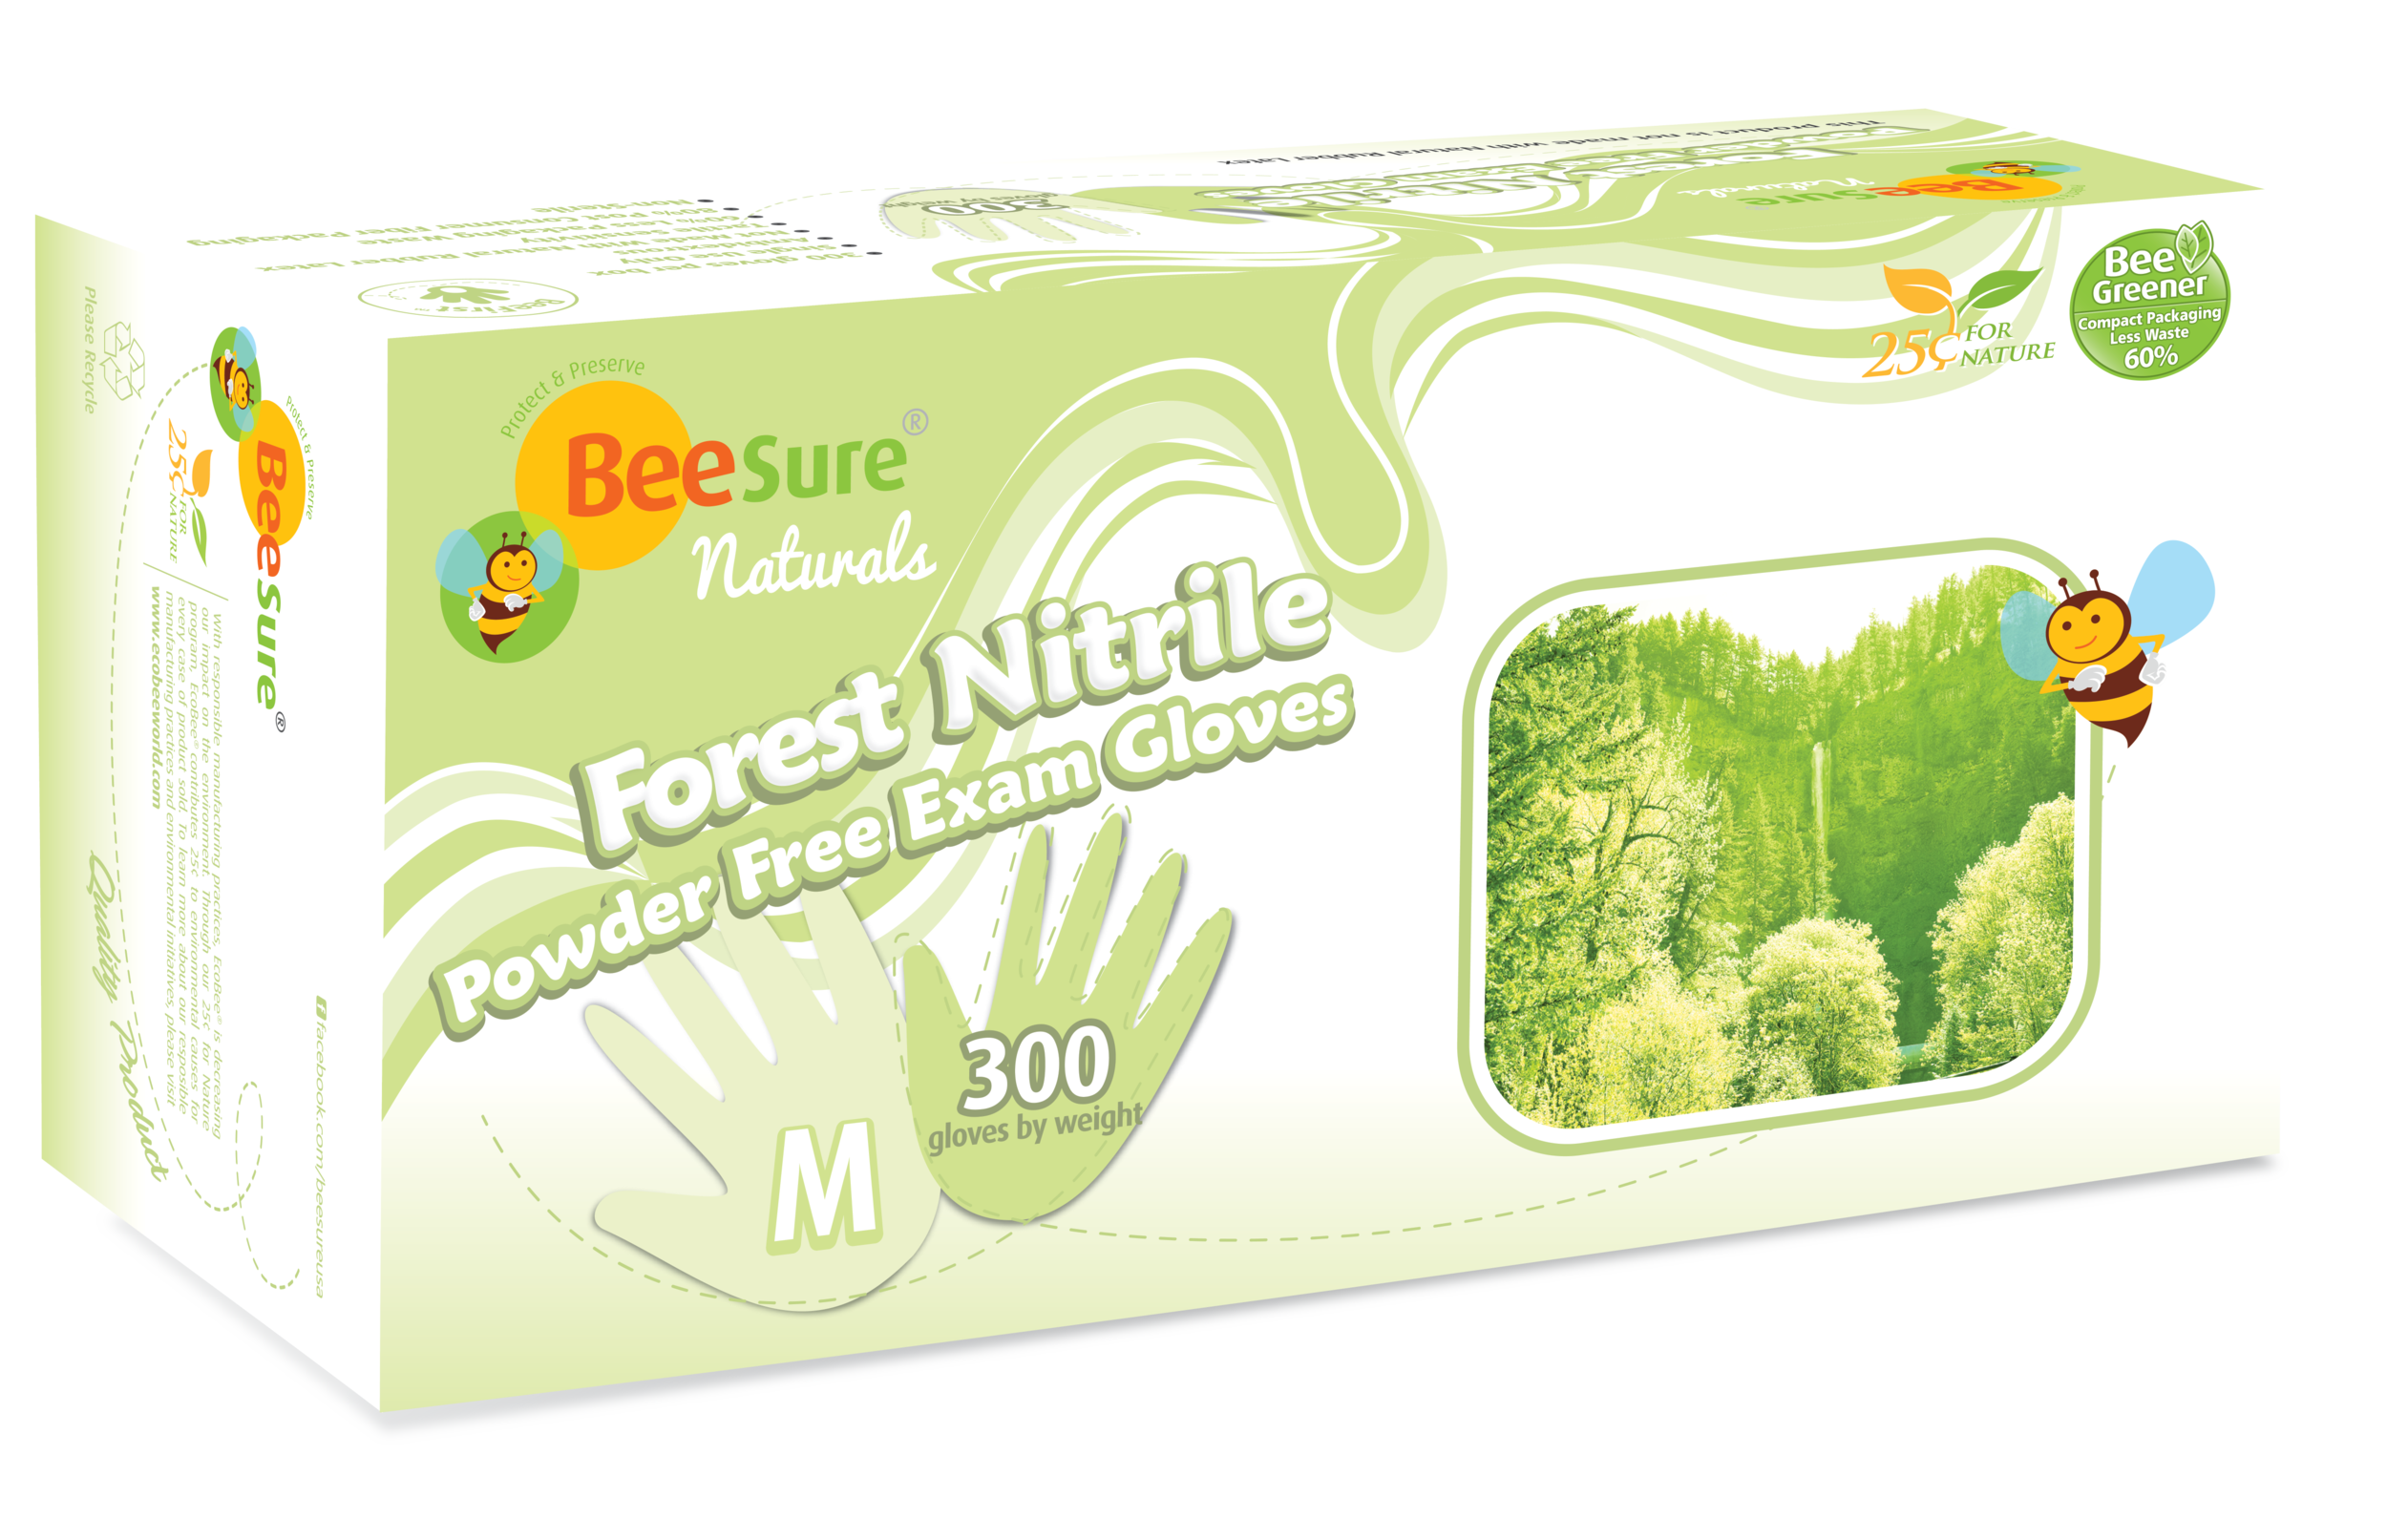 3-D Box Naturals Forest Nitrile 2014 M.png